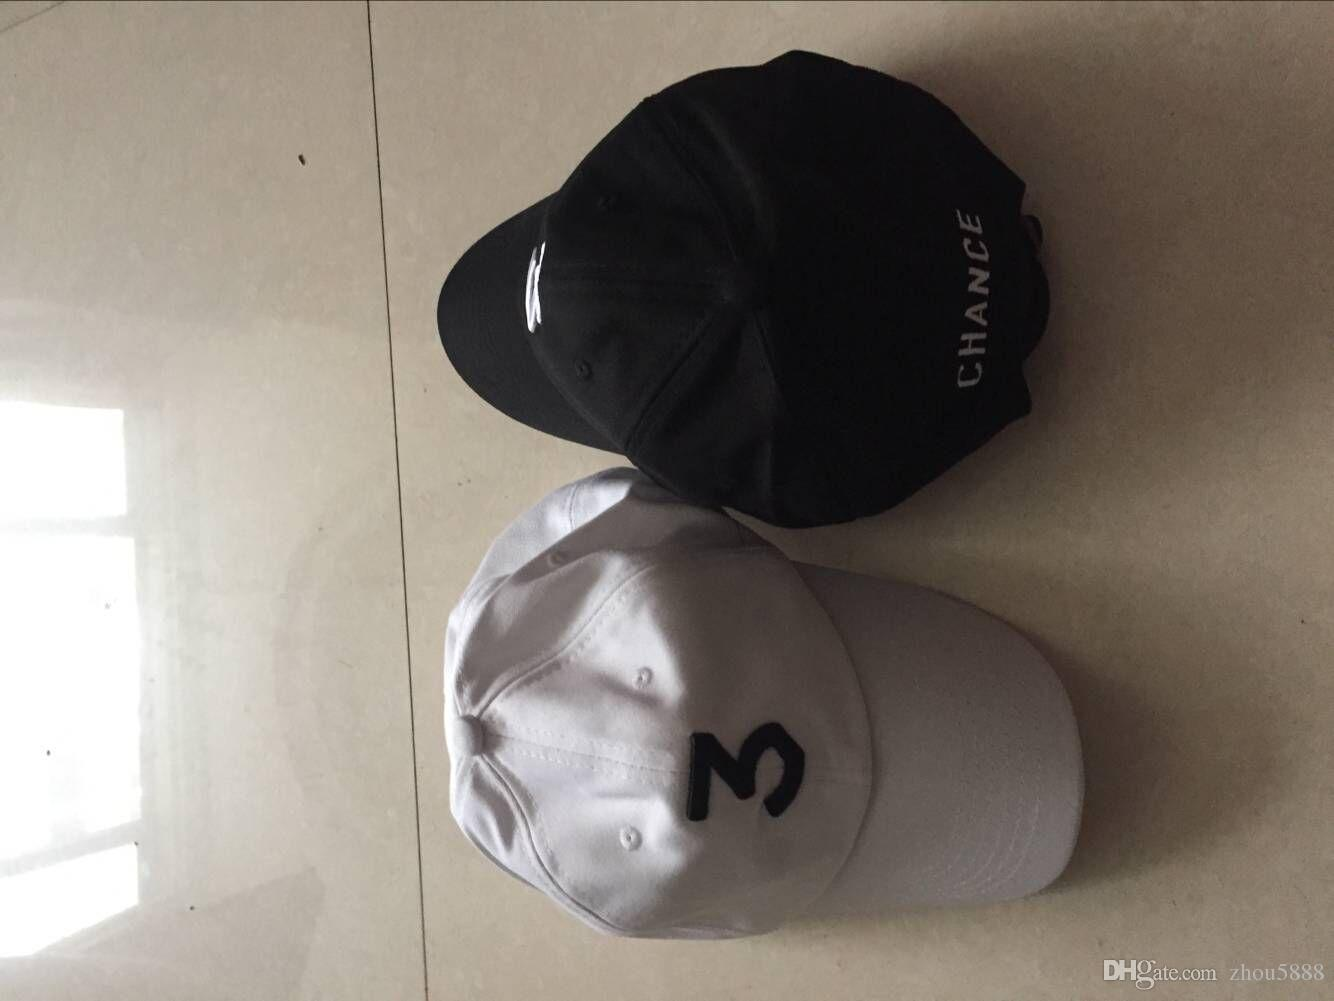 Coloring book chance the rapper hat -  New Chance 3 The Rapper Caps Streetwear Kanye West Dad Cap Letter Baseball Cap Coloring Book